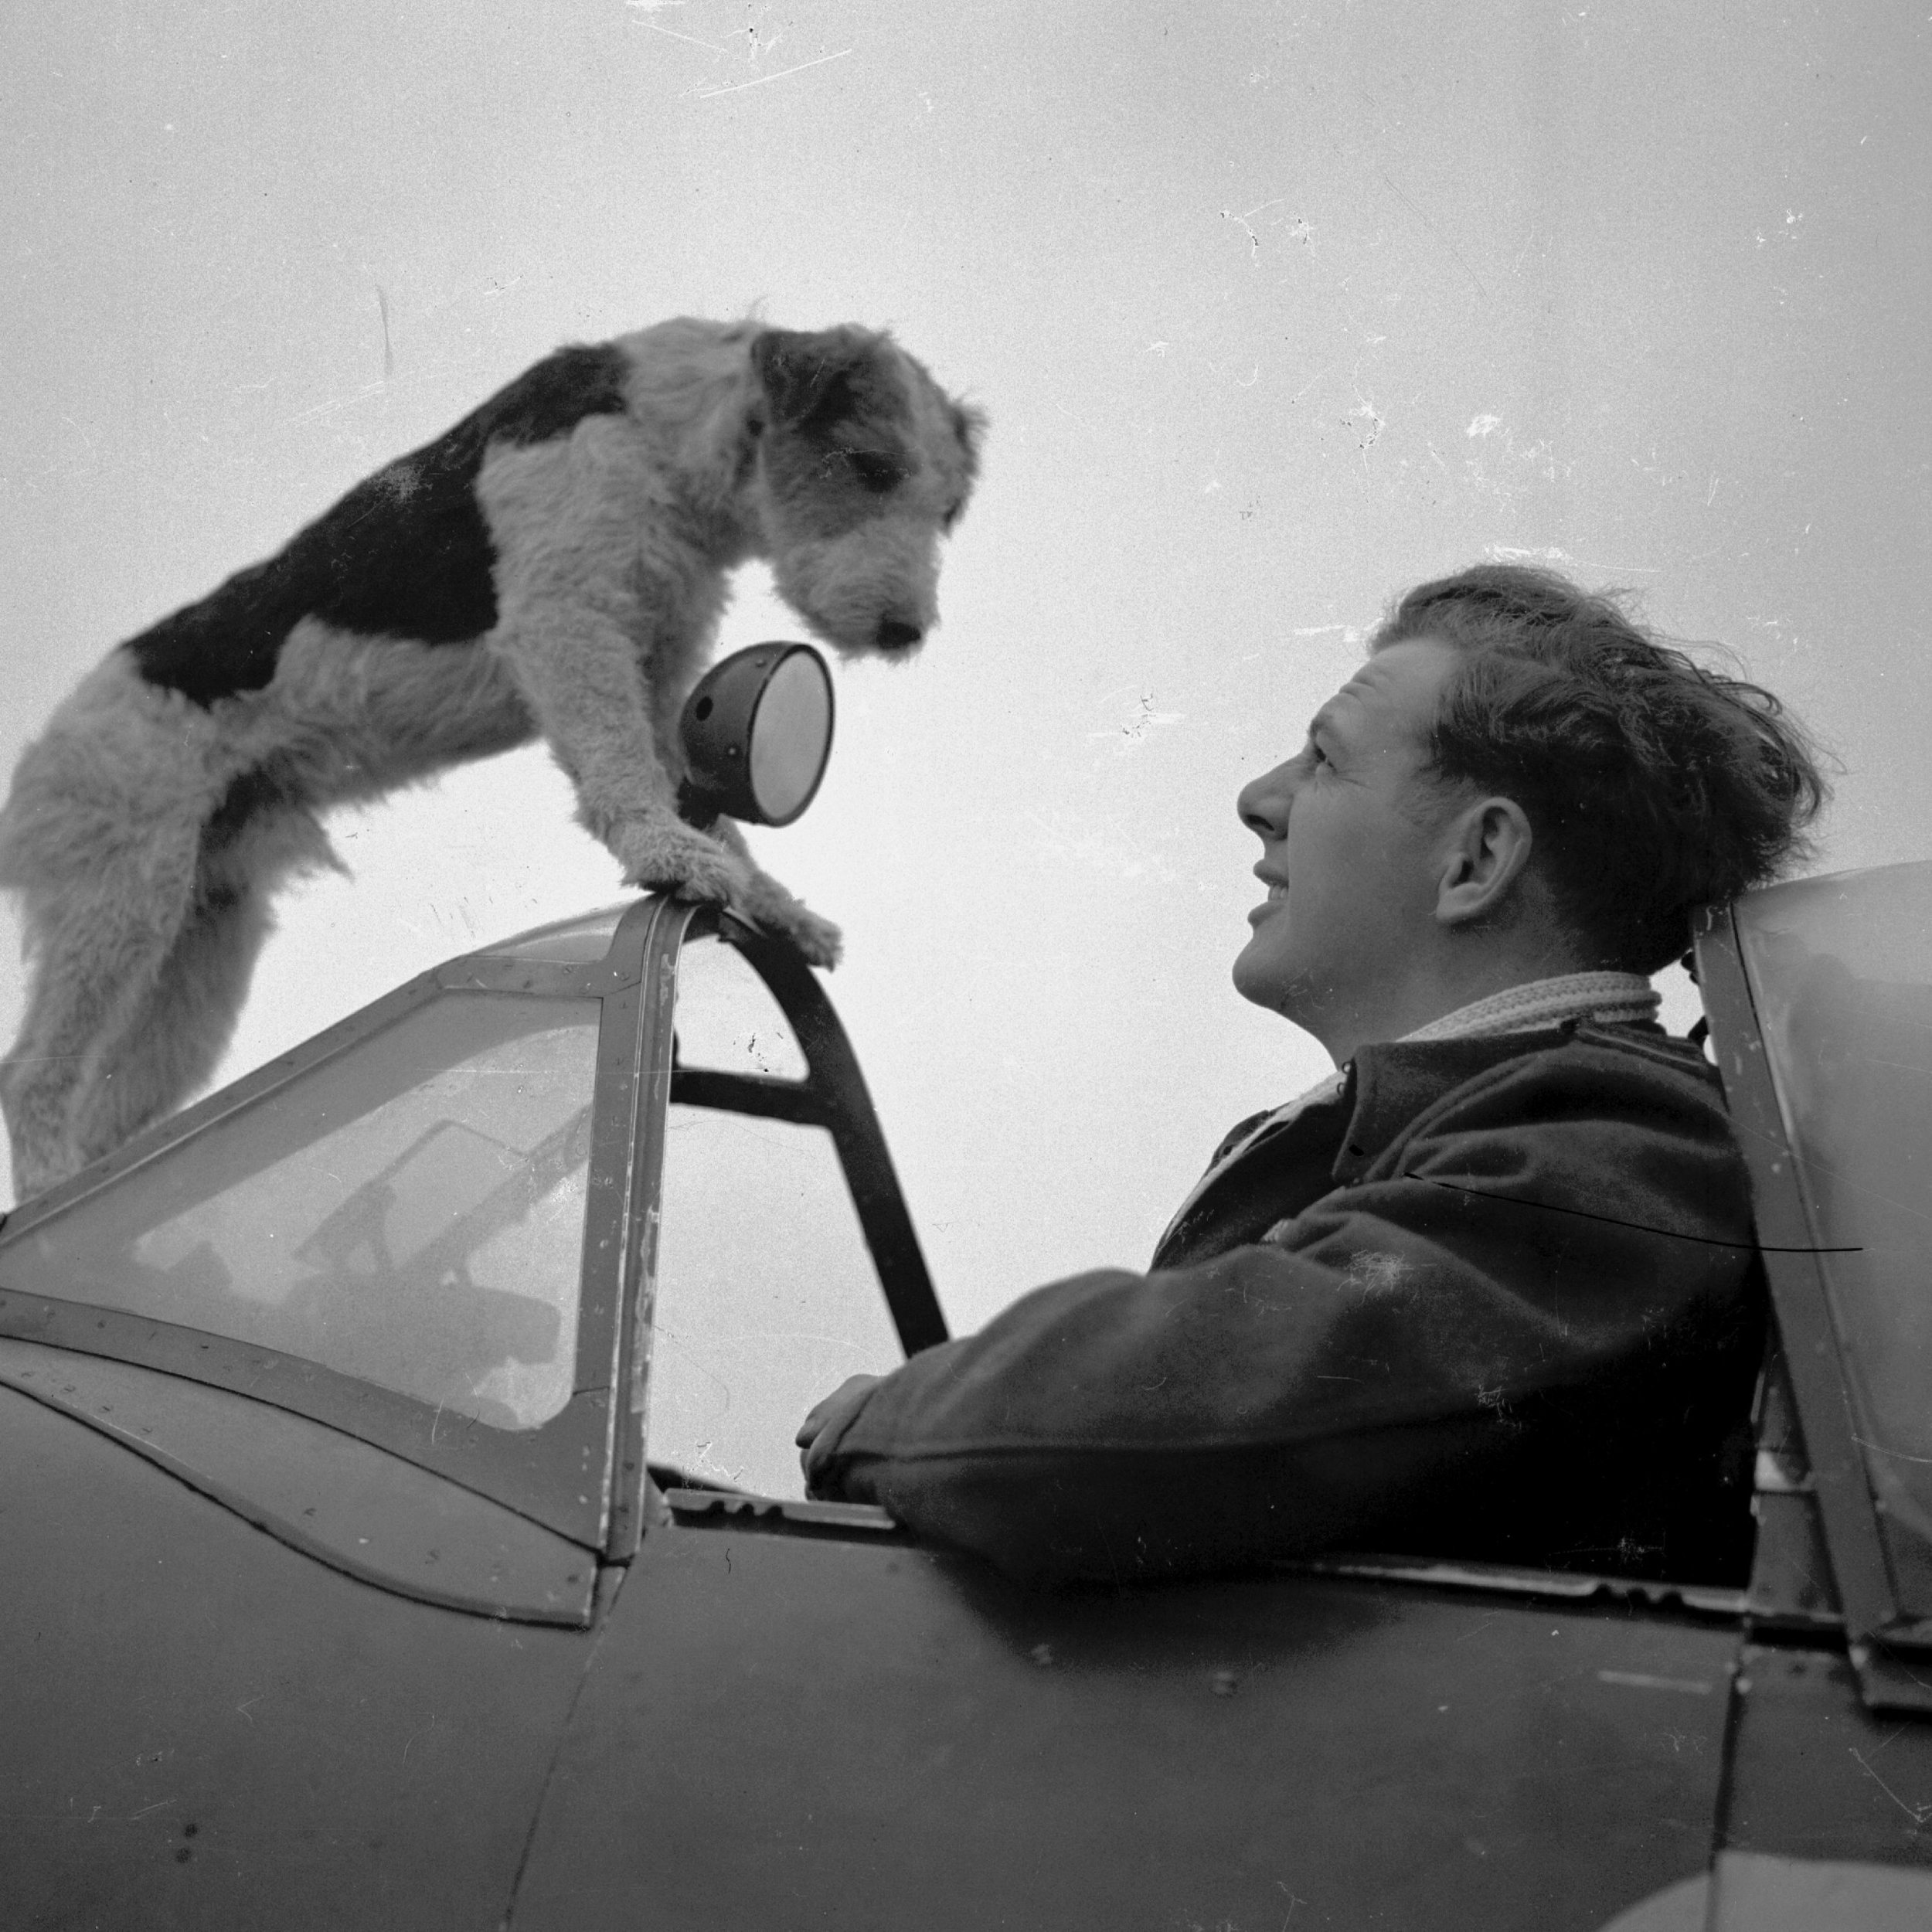 NZ fighter ace Des Scott with his terrier, Kim (Photo: Air Force Museum of New Zealand)